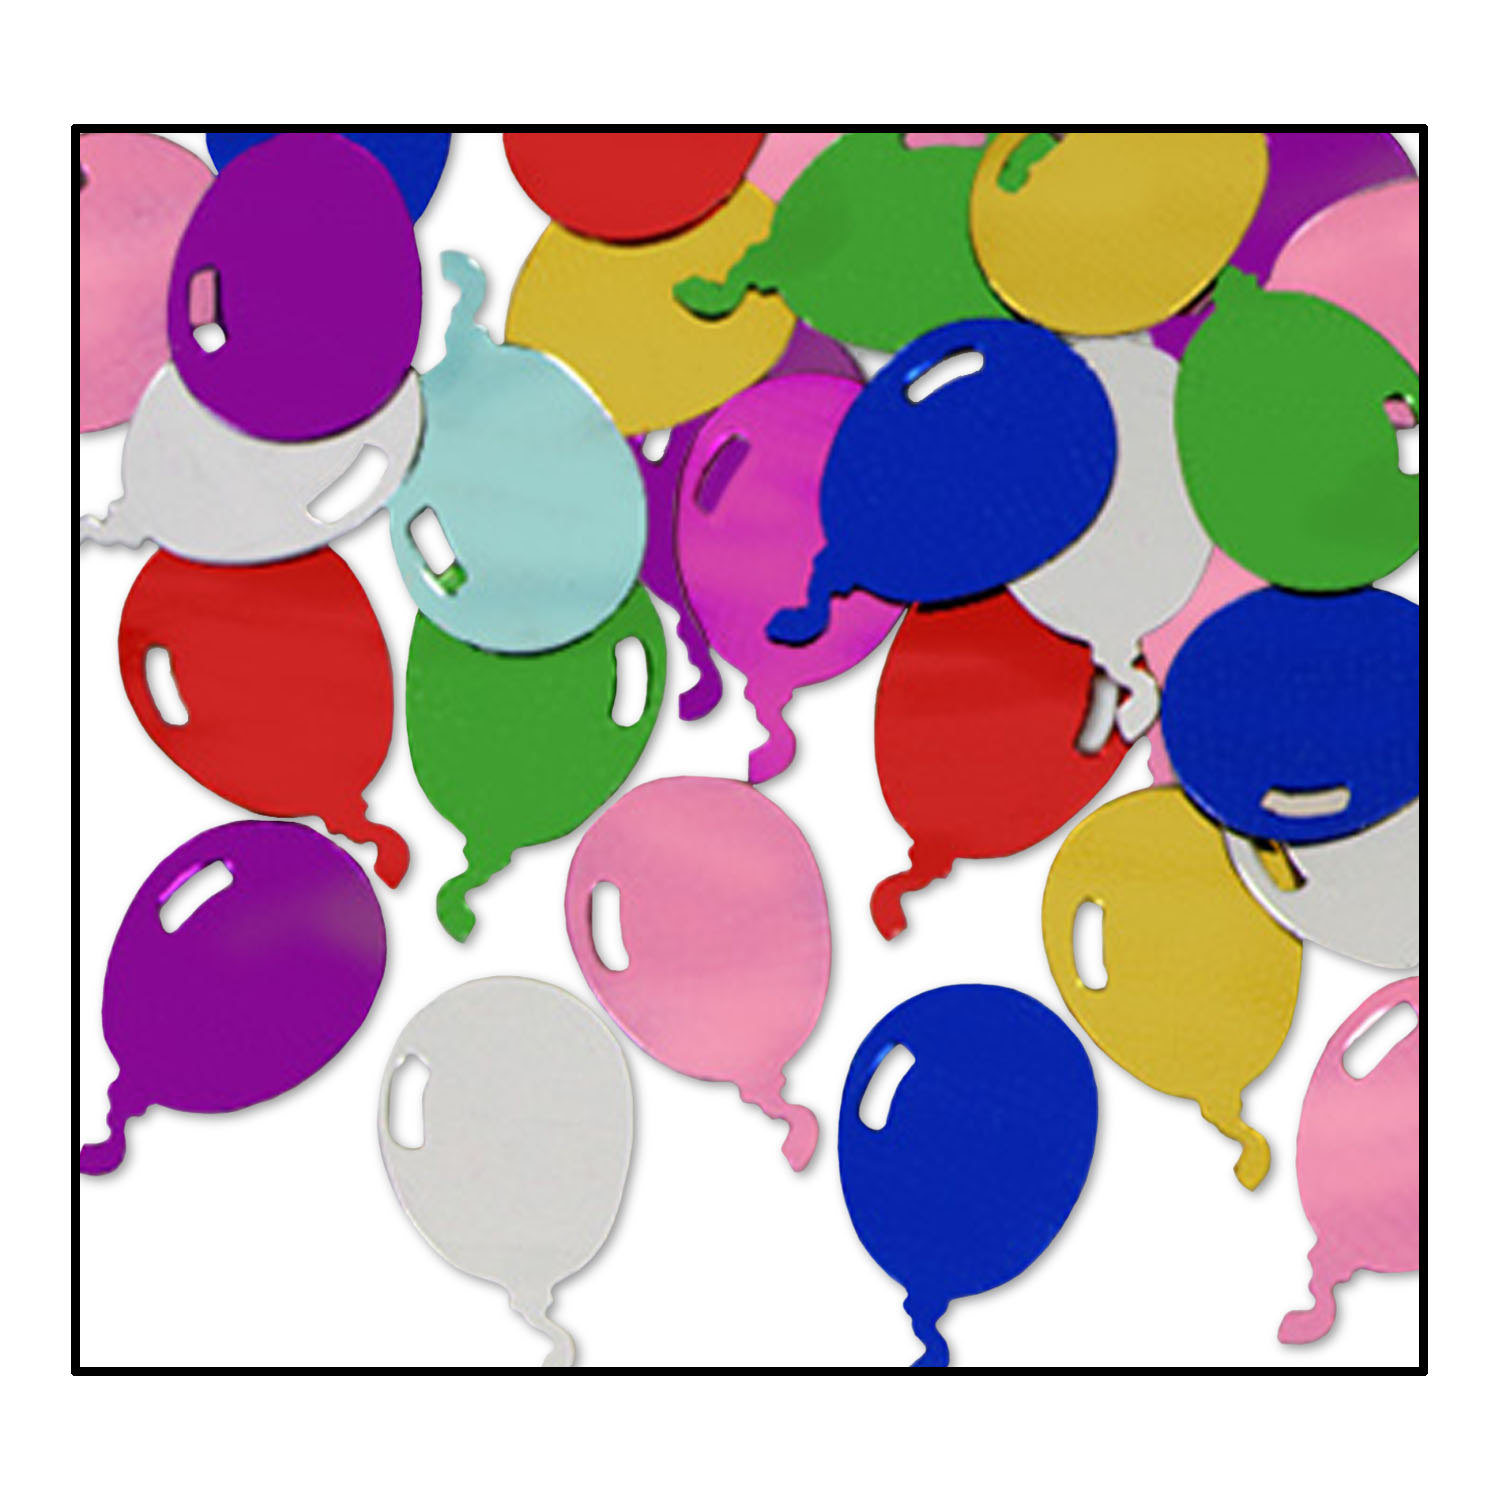 Fanci-Fetti Balloons (Pack of 12) Fanci-Fetti Balloons, Metallic Confetti, Balloon Decor, Birthday ideas, New Years Eve ideas, New Years Eve, Party supplies, Wholesale party goods, Cheap party decor, Table decorations, bulk fanci-fetti, colorful balloon decor